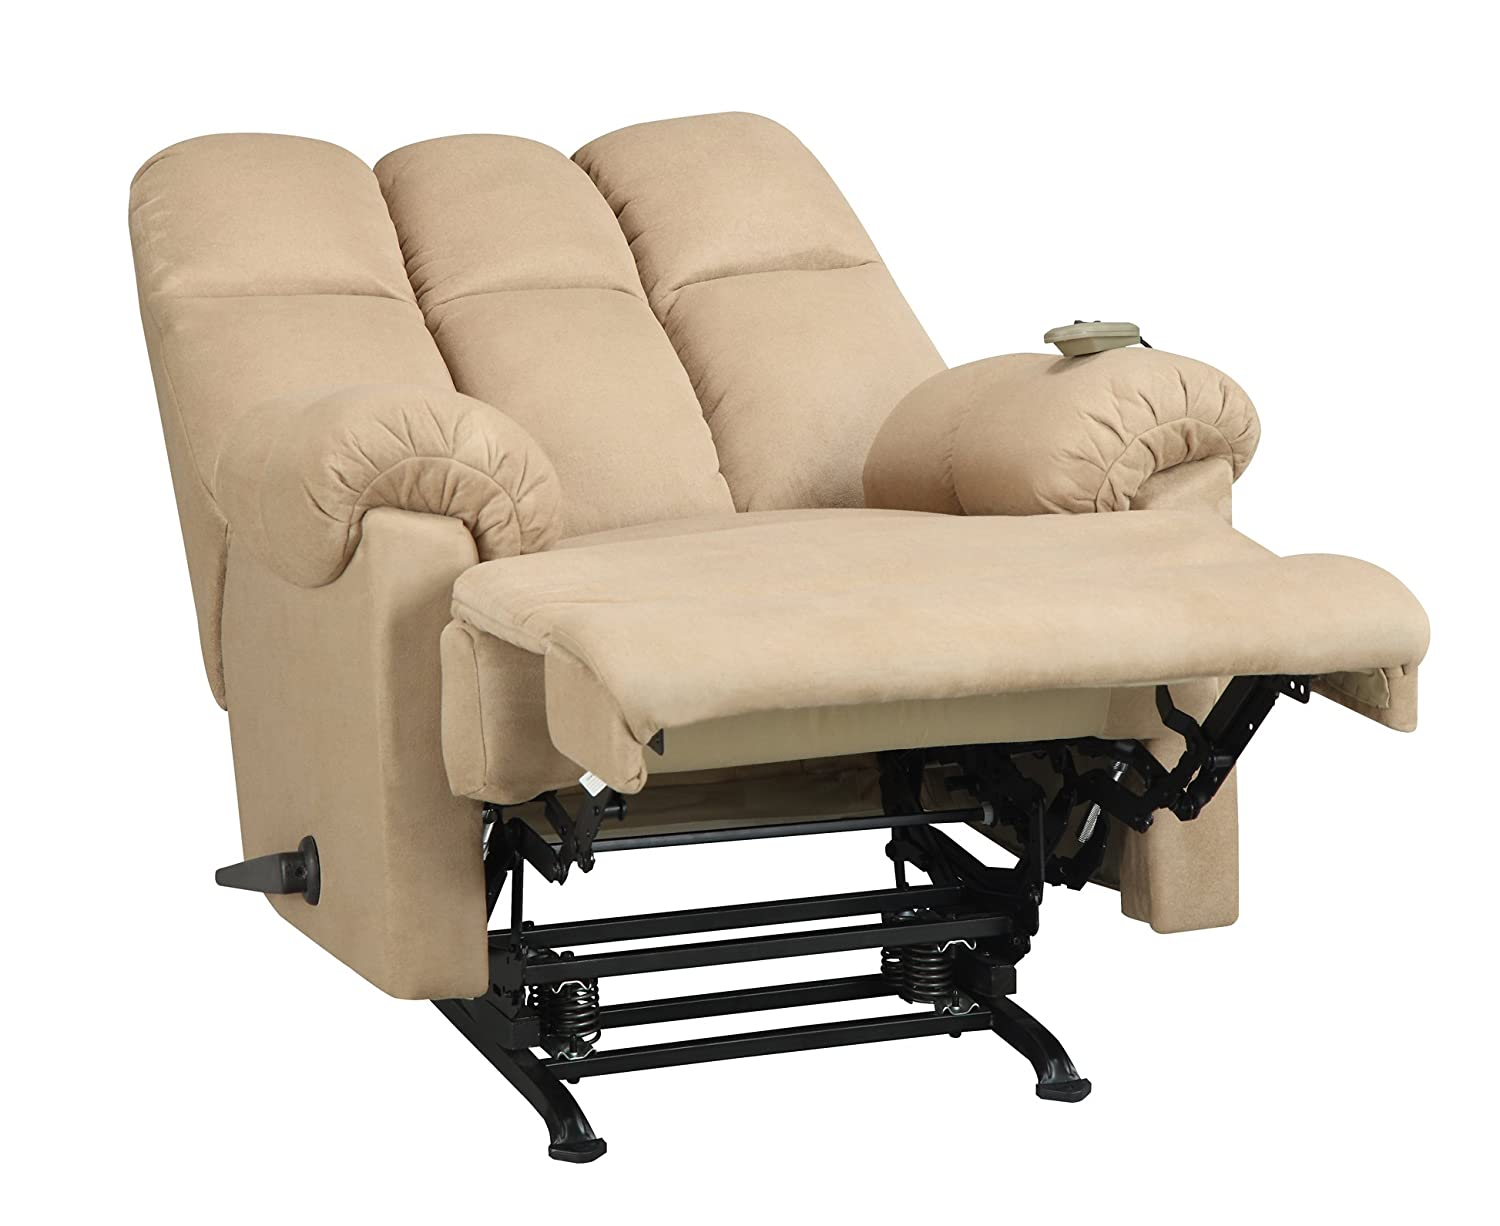 high a dl duty download email resolution heavy recliners via share image product recliner flexsteel com